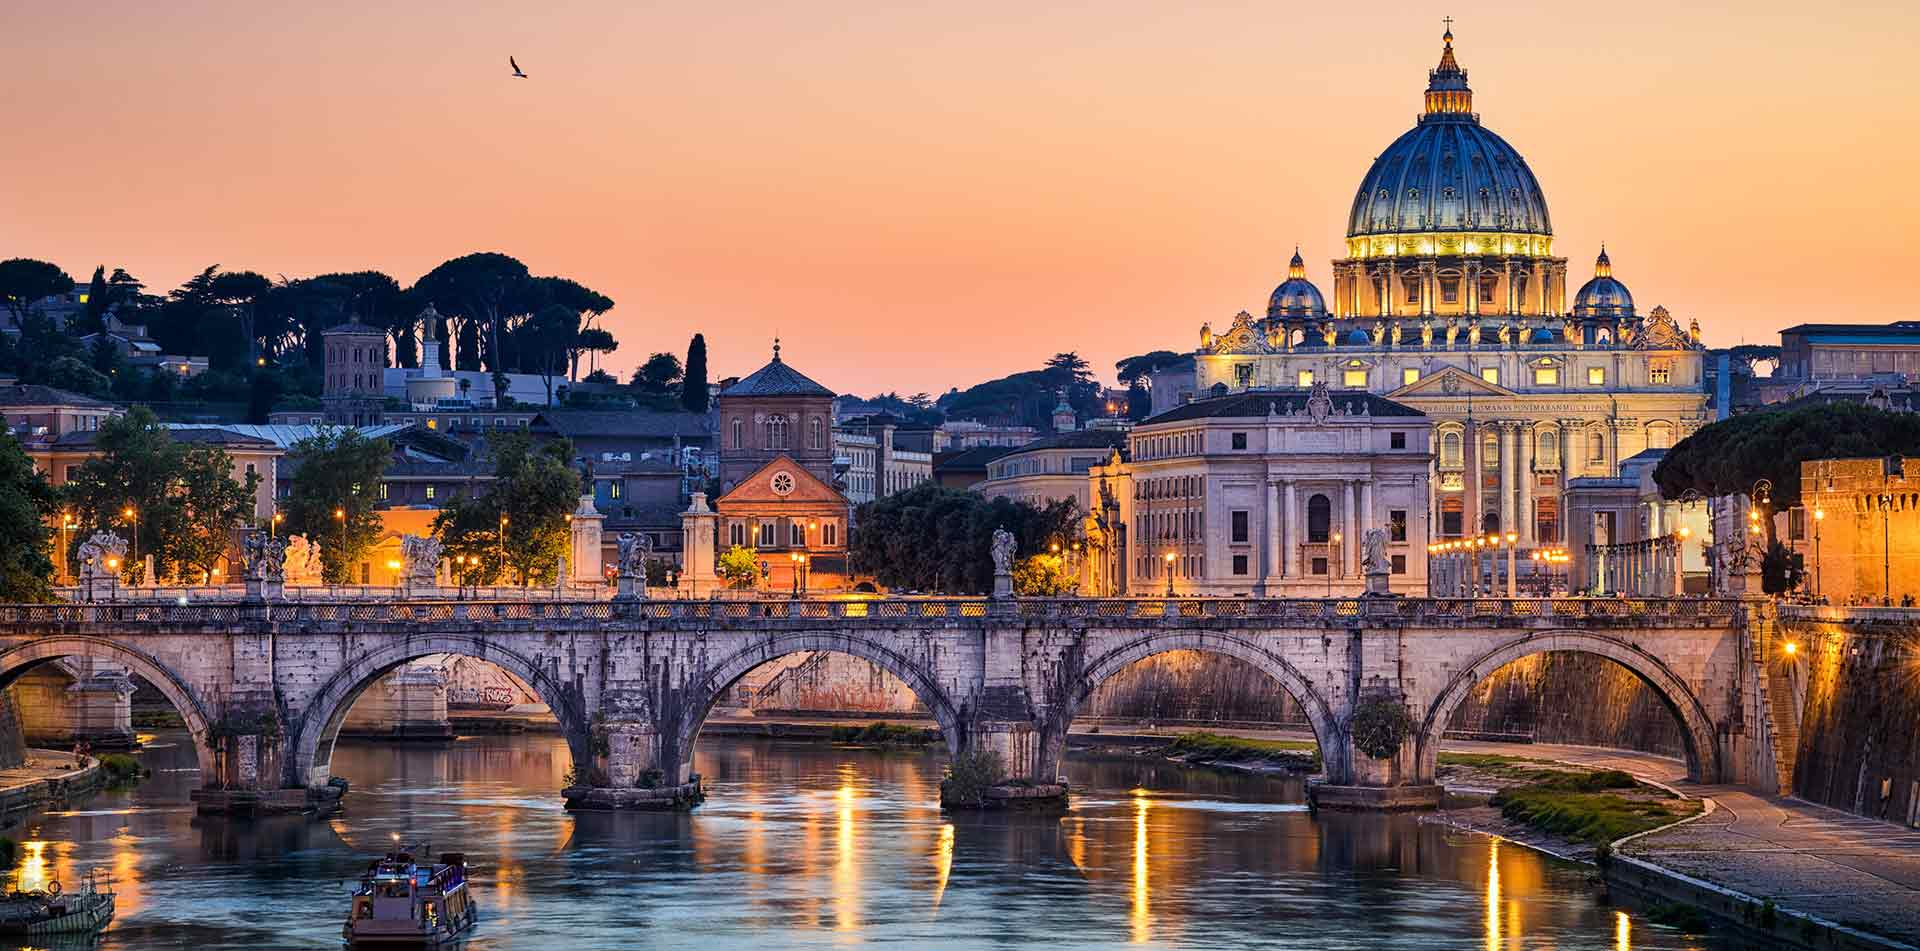 Europe Italy Rome colorful sunset scenic Tiber River Vatican historic St. Peter's Basilica - luxury vacation destination